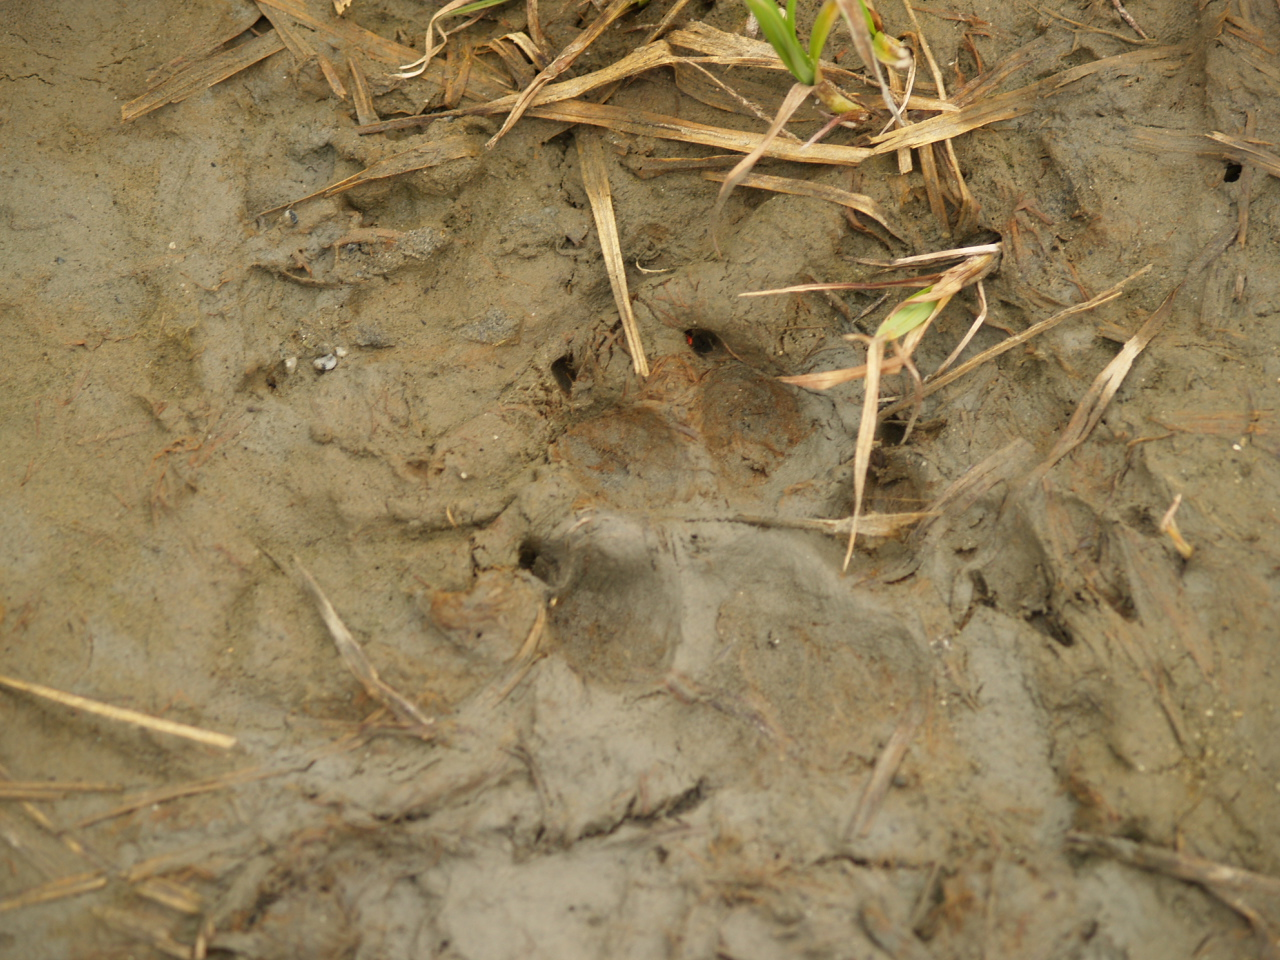 Wolf print and rabbit tracks (2007).